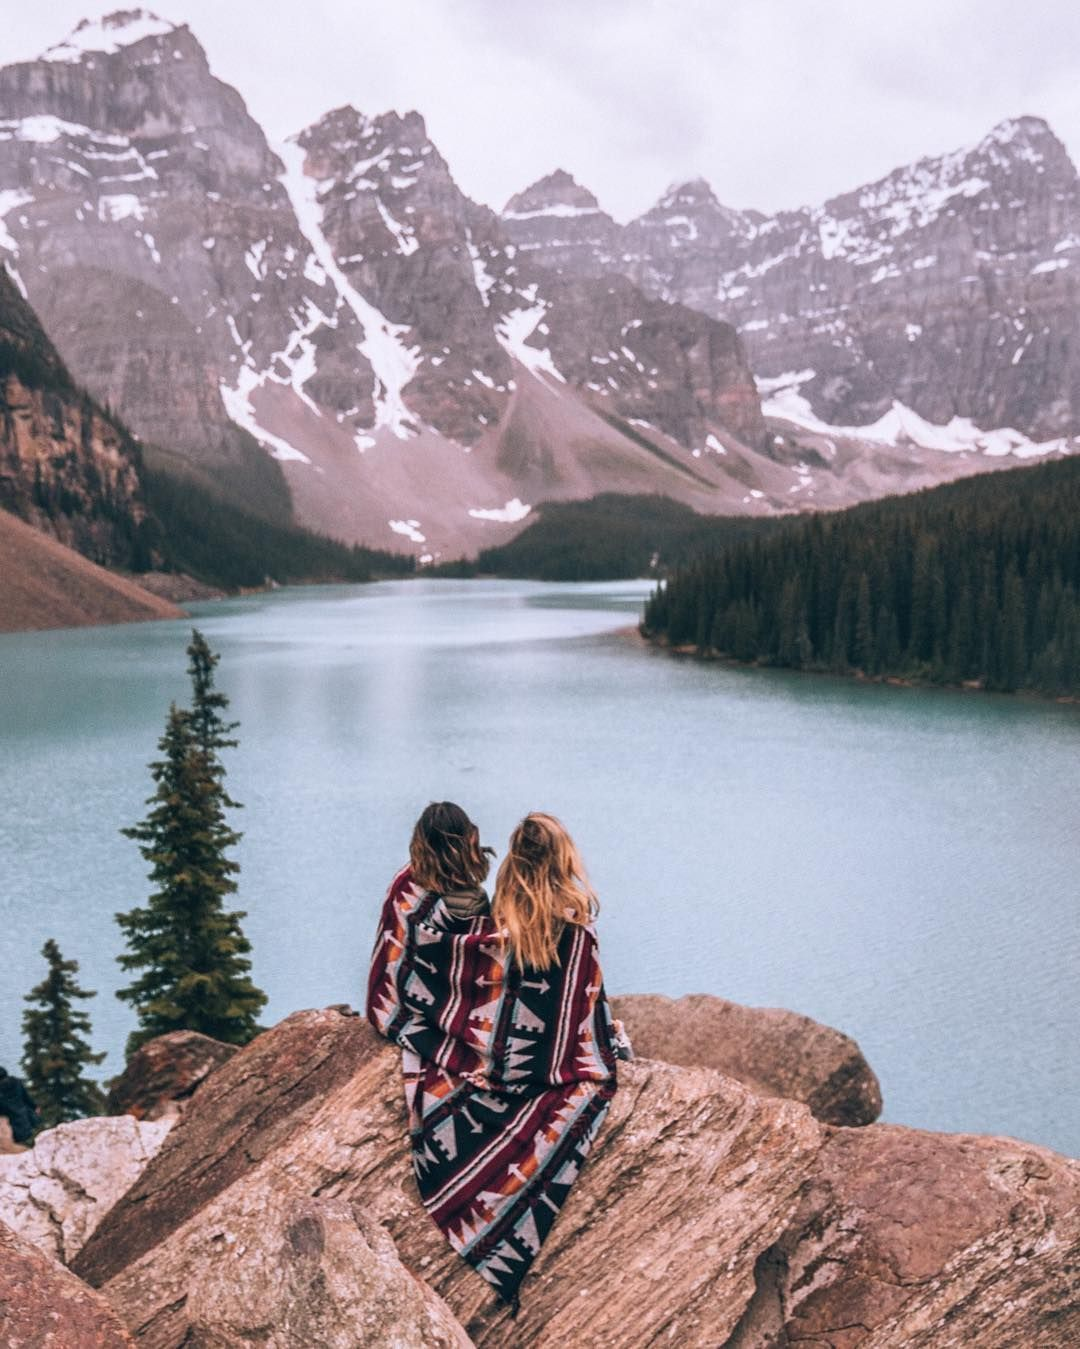 Moraine Lake Banff National Park Calgary Alberta Travel Style Sack Cloth Ashes Outdoors Adventure In Best Friends Instagram